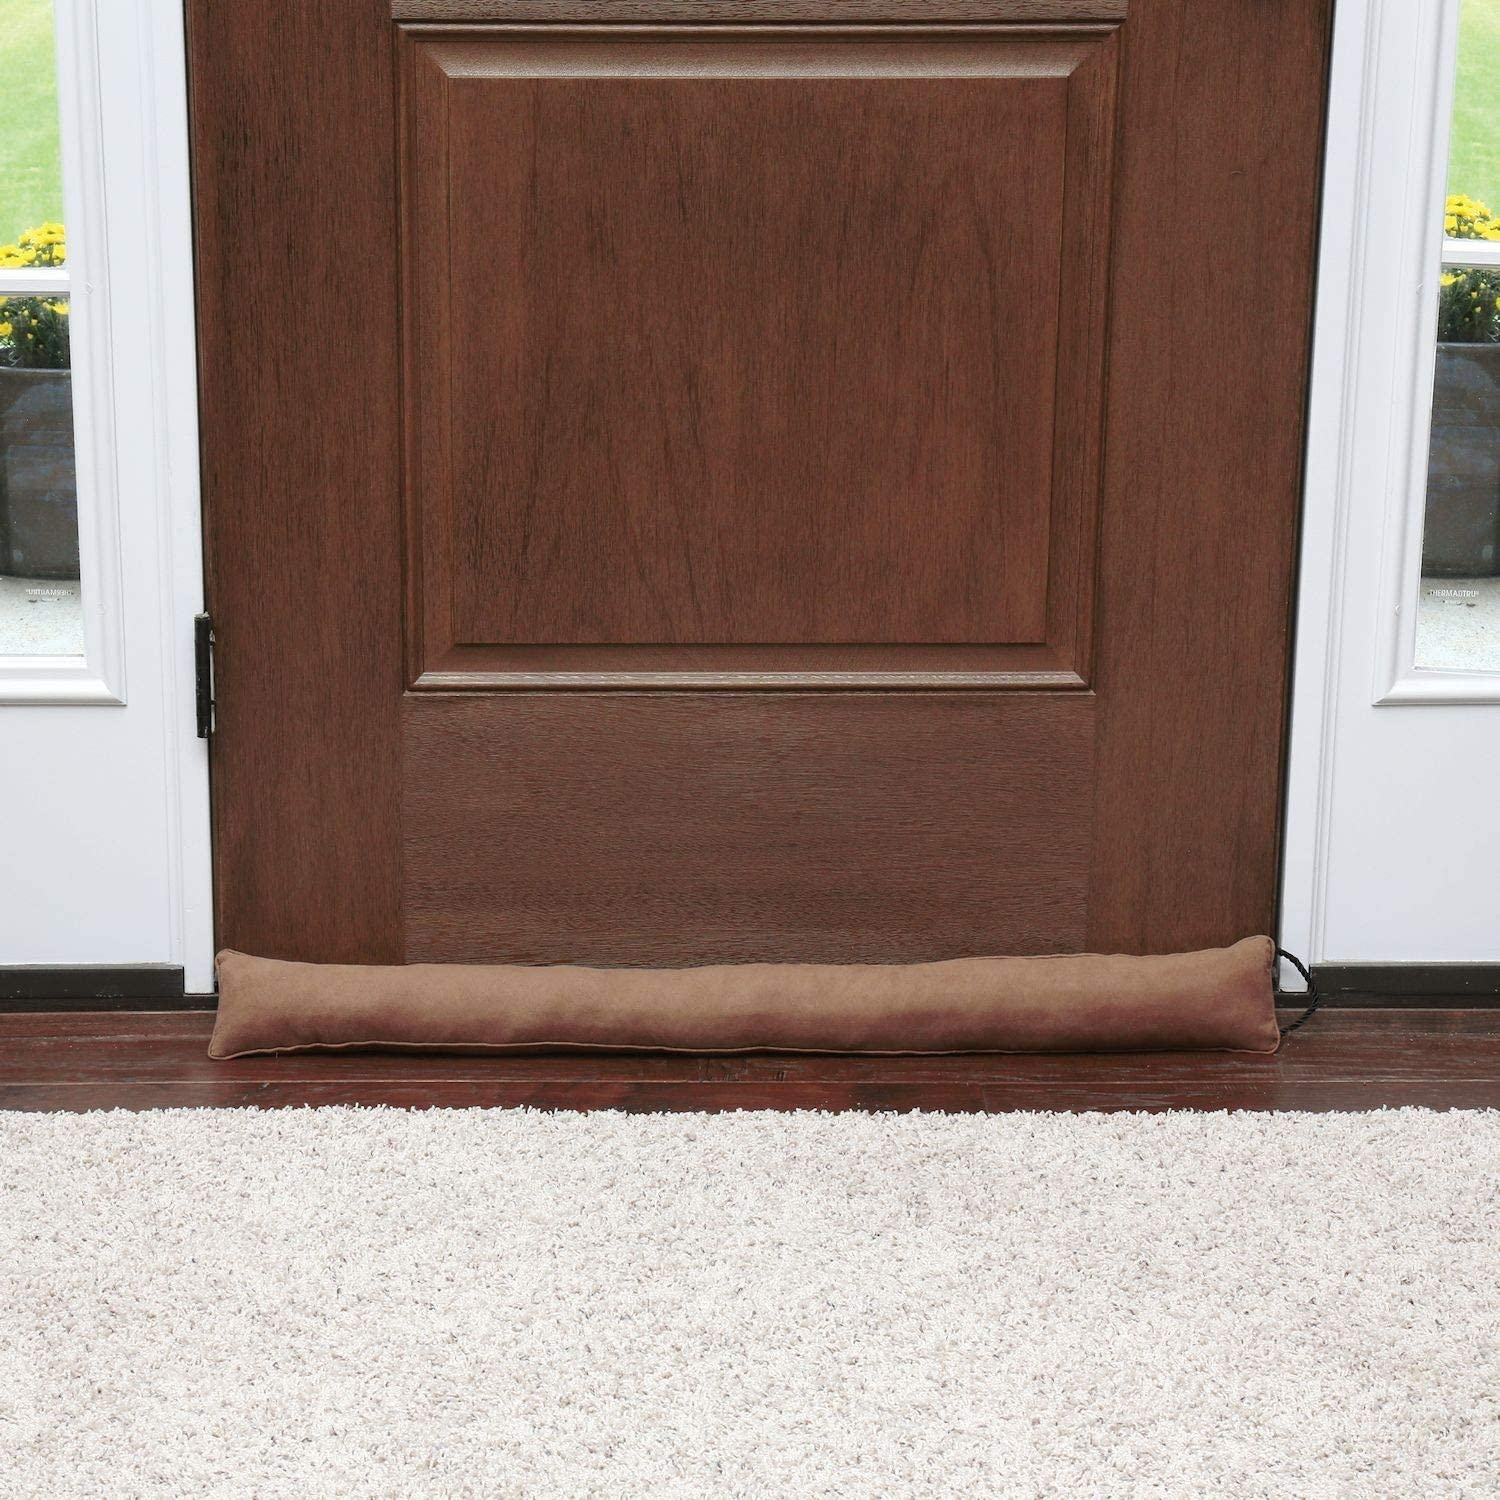 HOME DISTRICT Draft Dodger - Faux Suede Weighted Door and Window Breeze, Bug, Noise Guard Stopper Blocker - 35.5 Inches Long - Chocolate